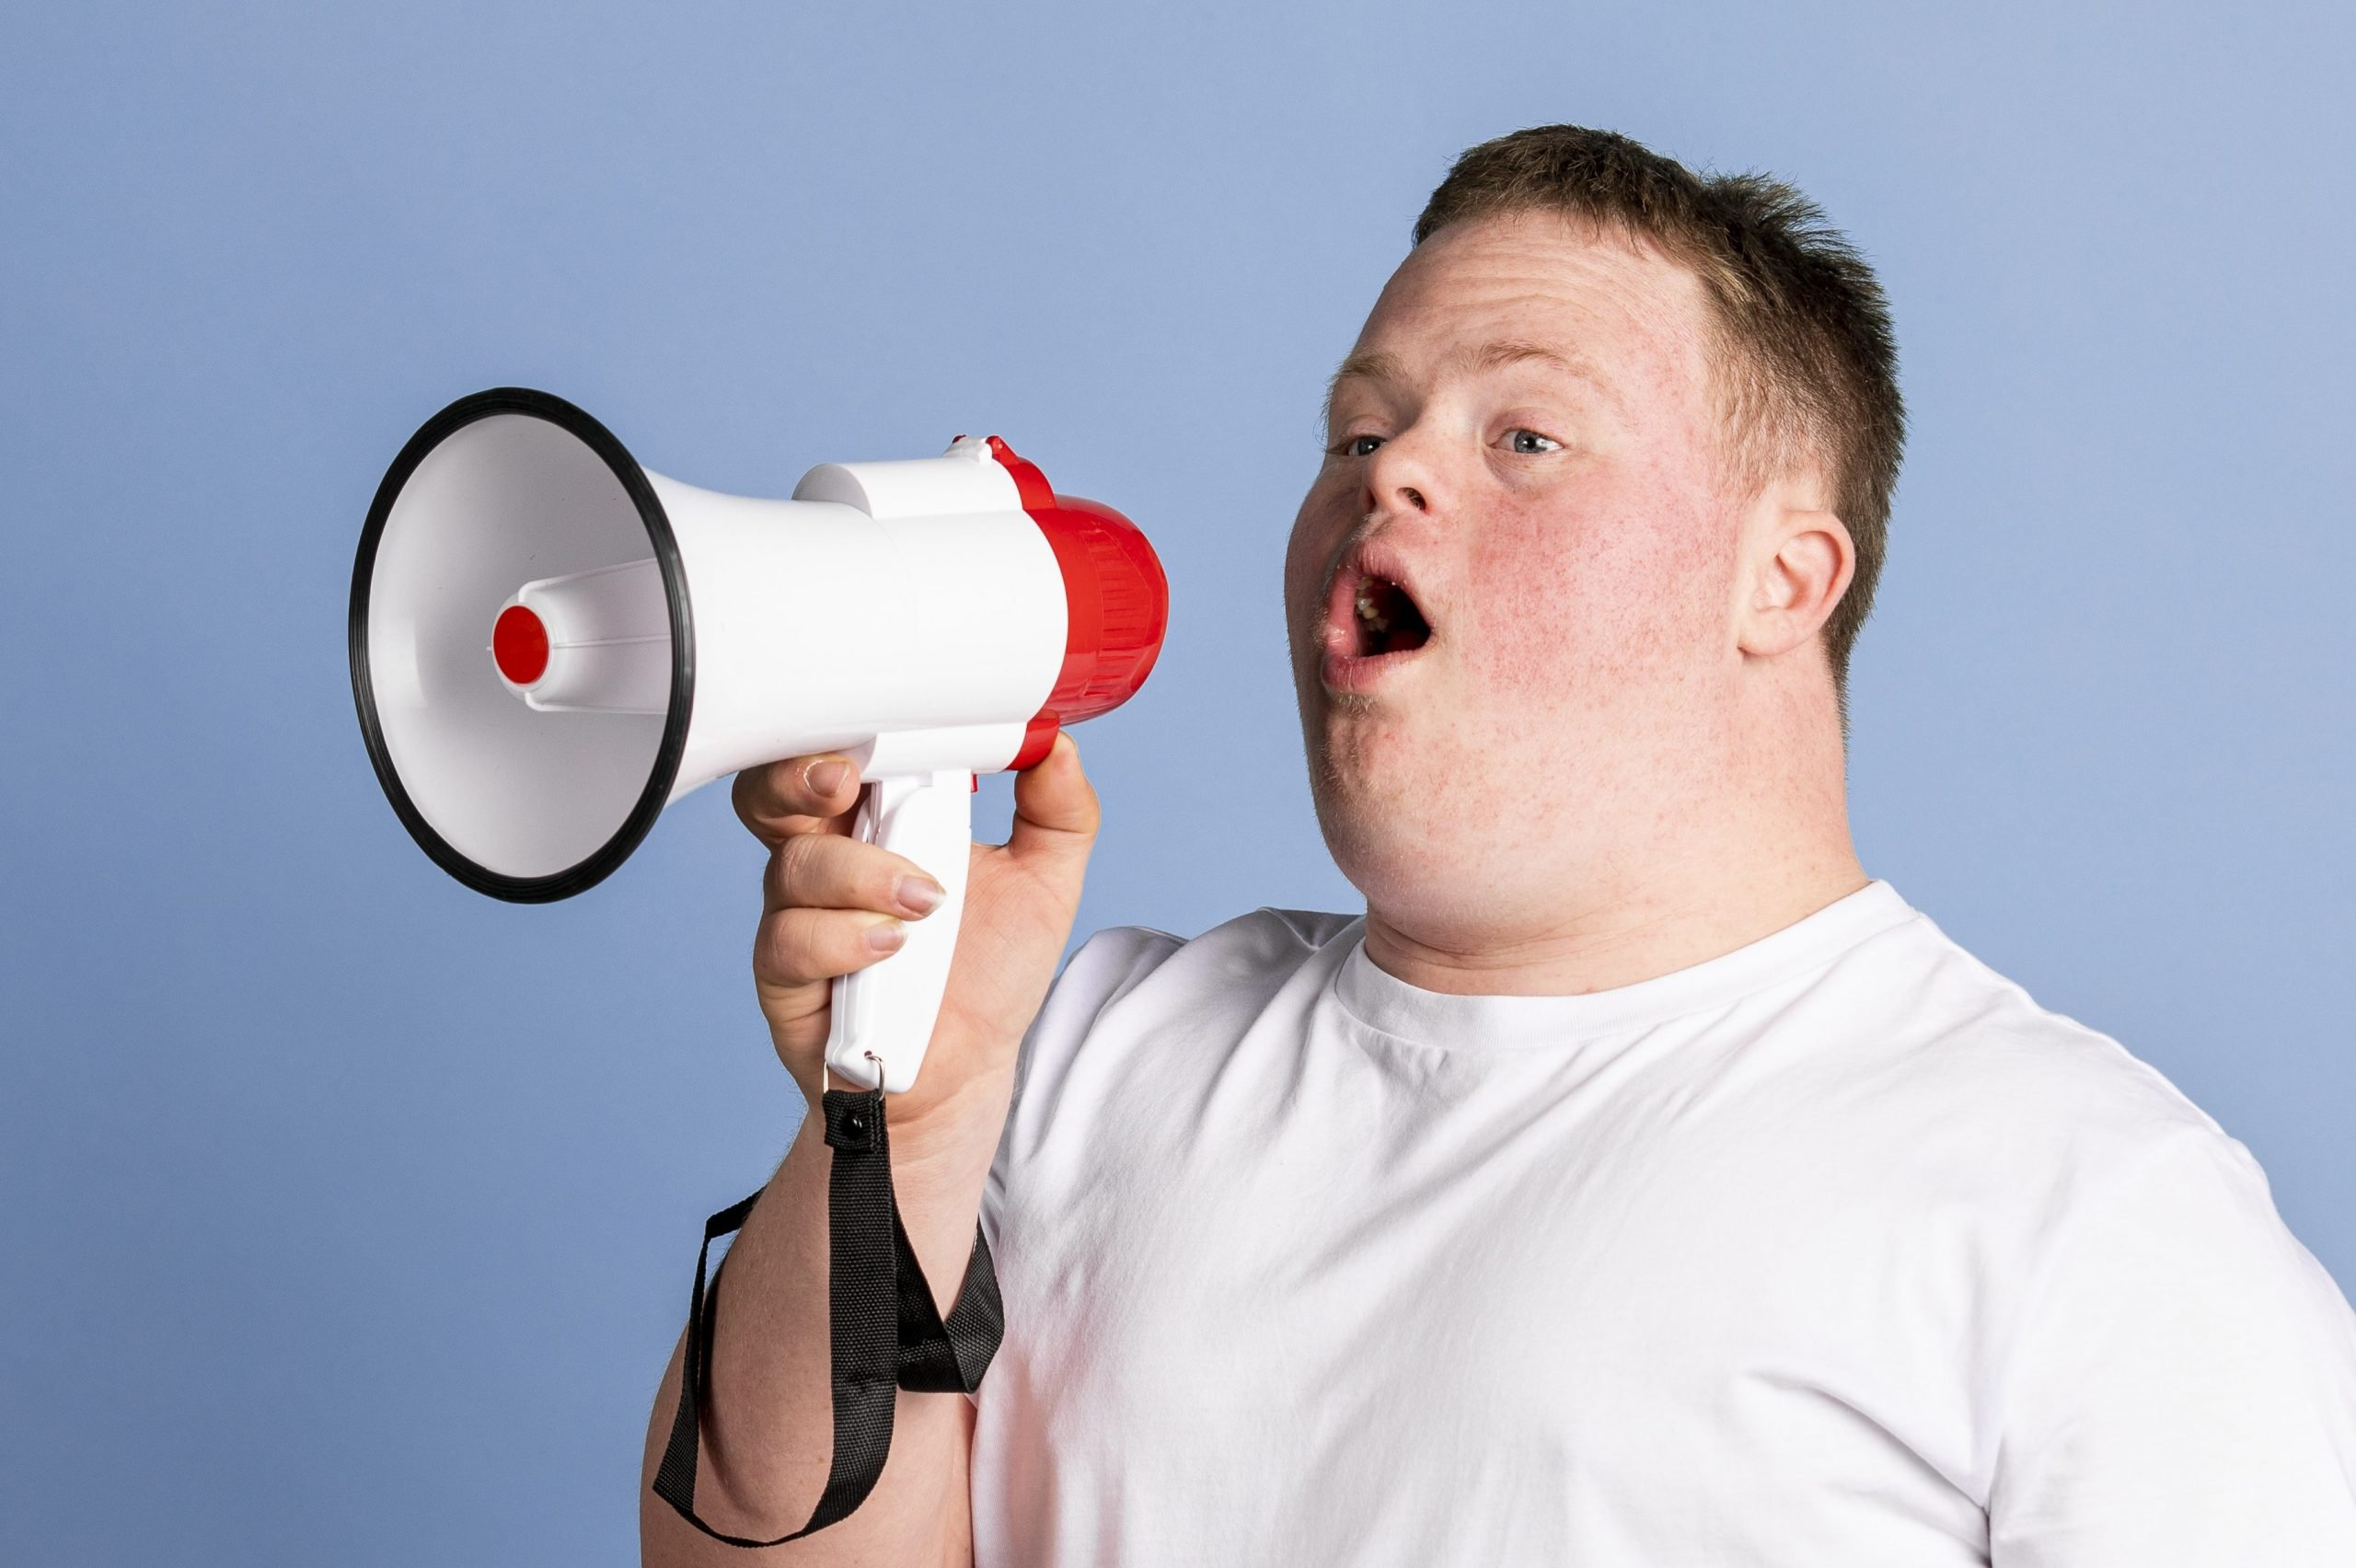 Cute boy with down syndrome using a megaphone to amplify his voice